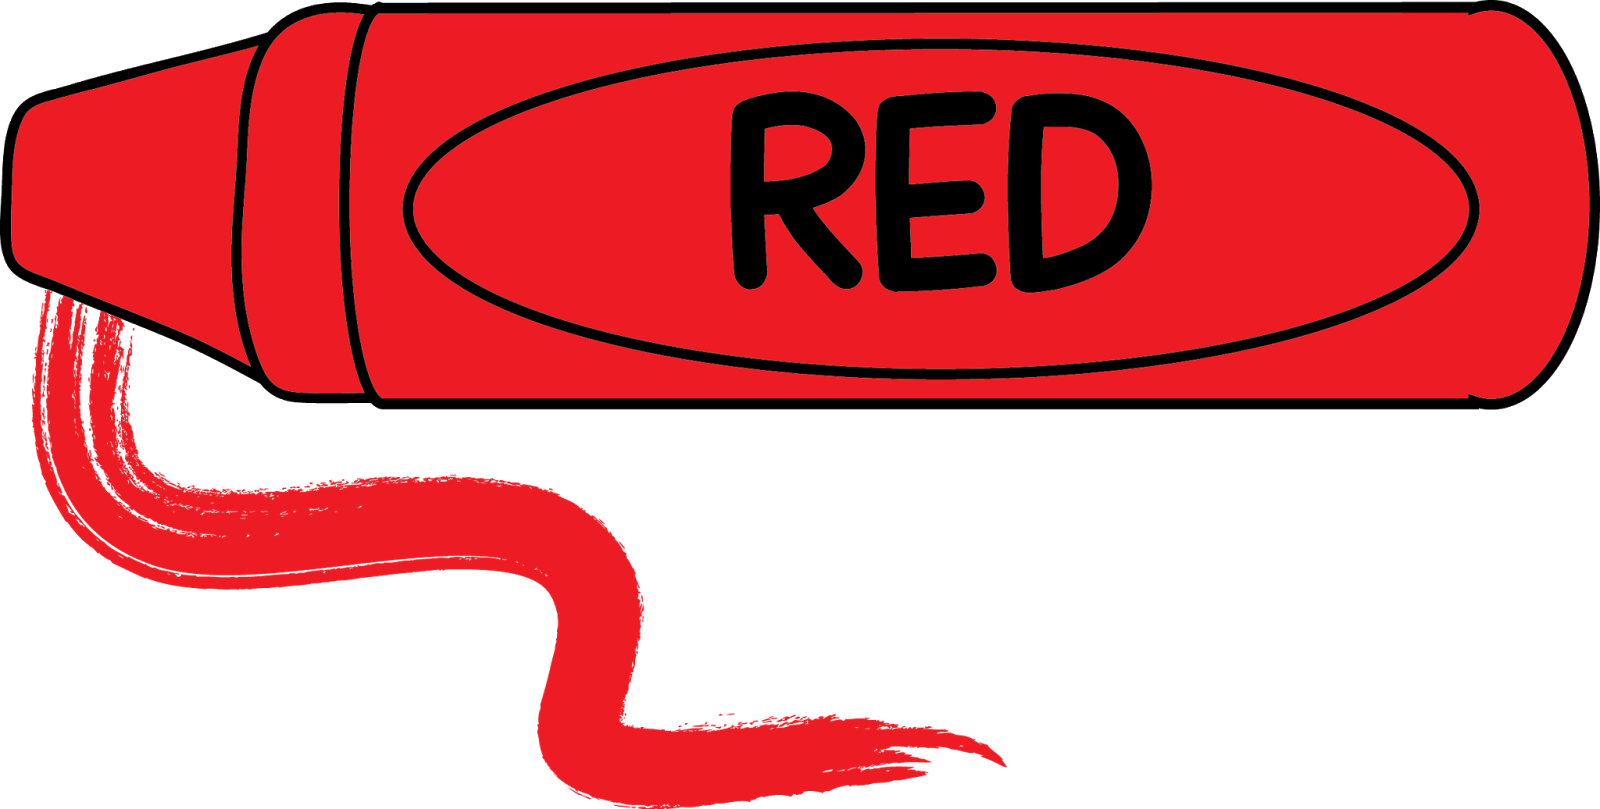 Crayon clipart long. Luxury of red letters